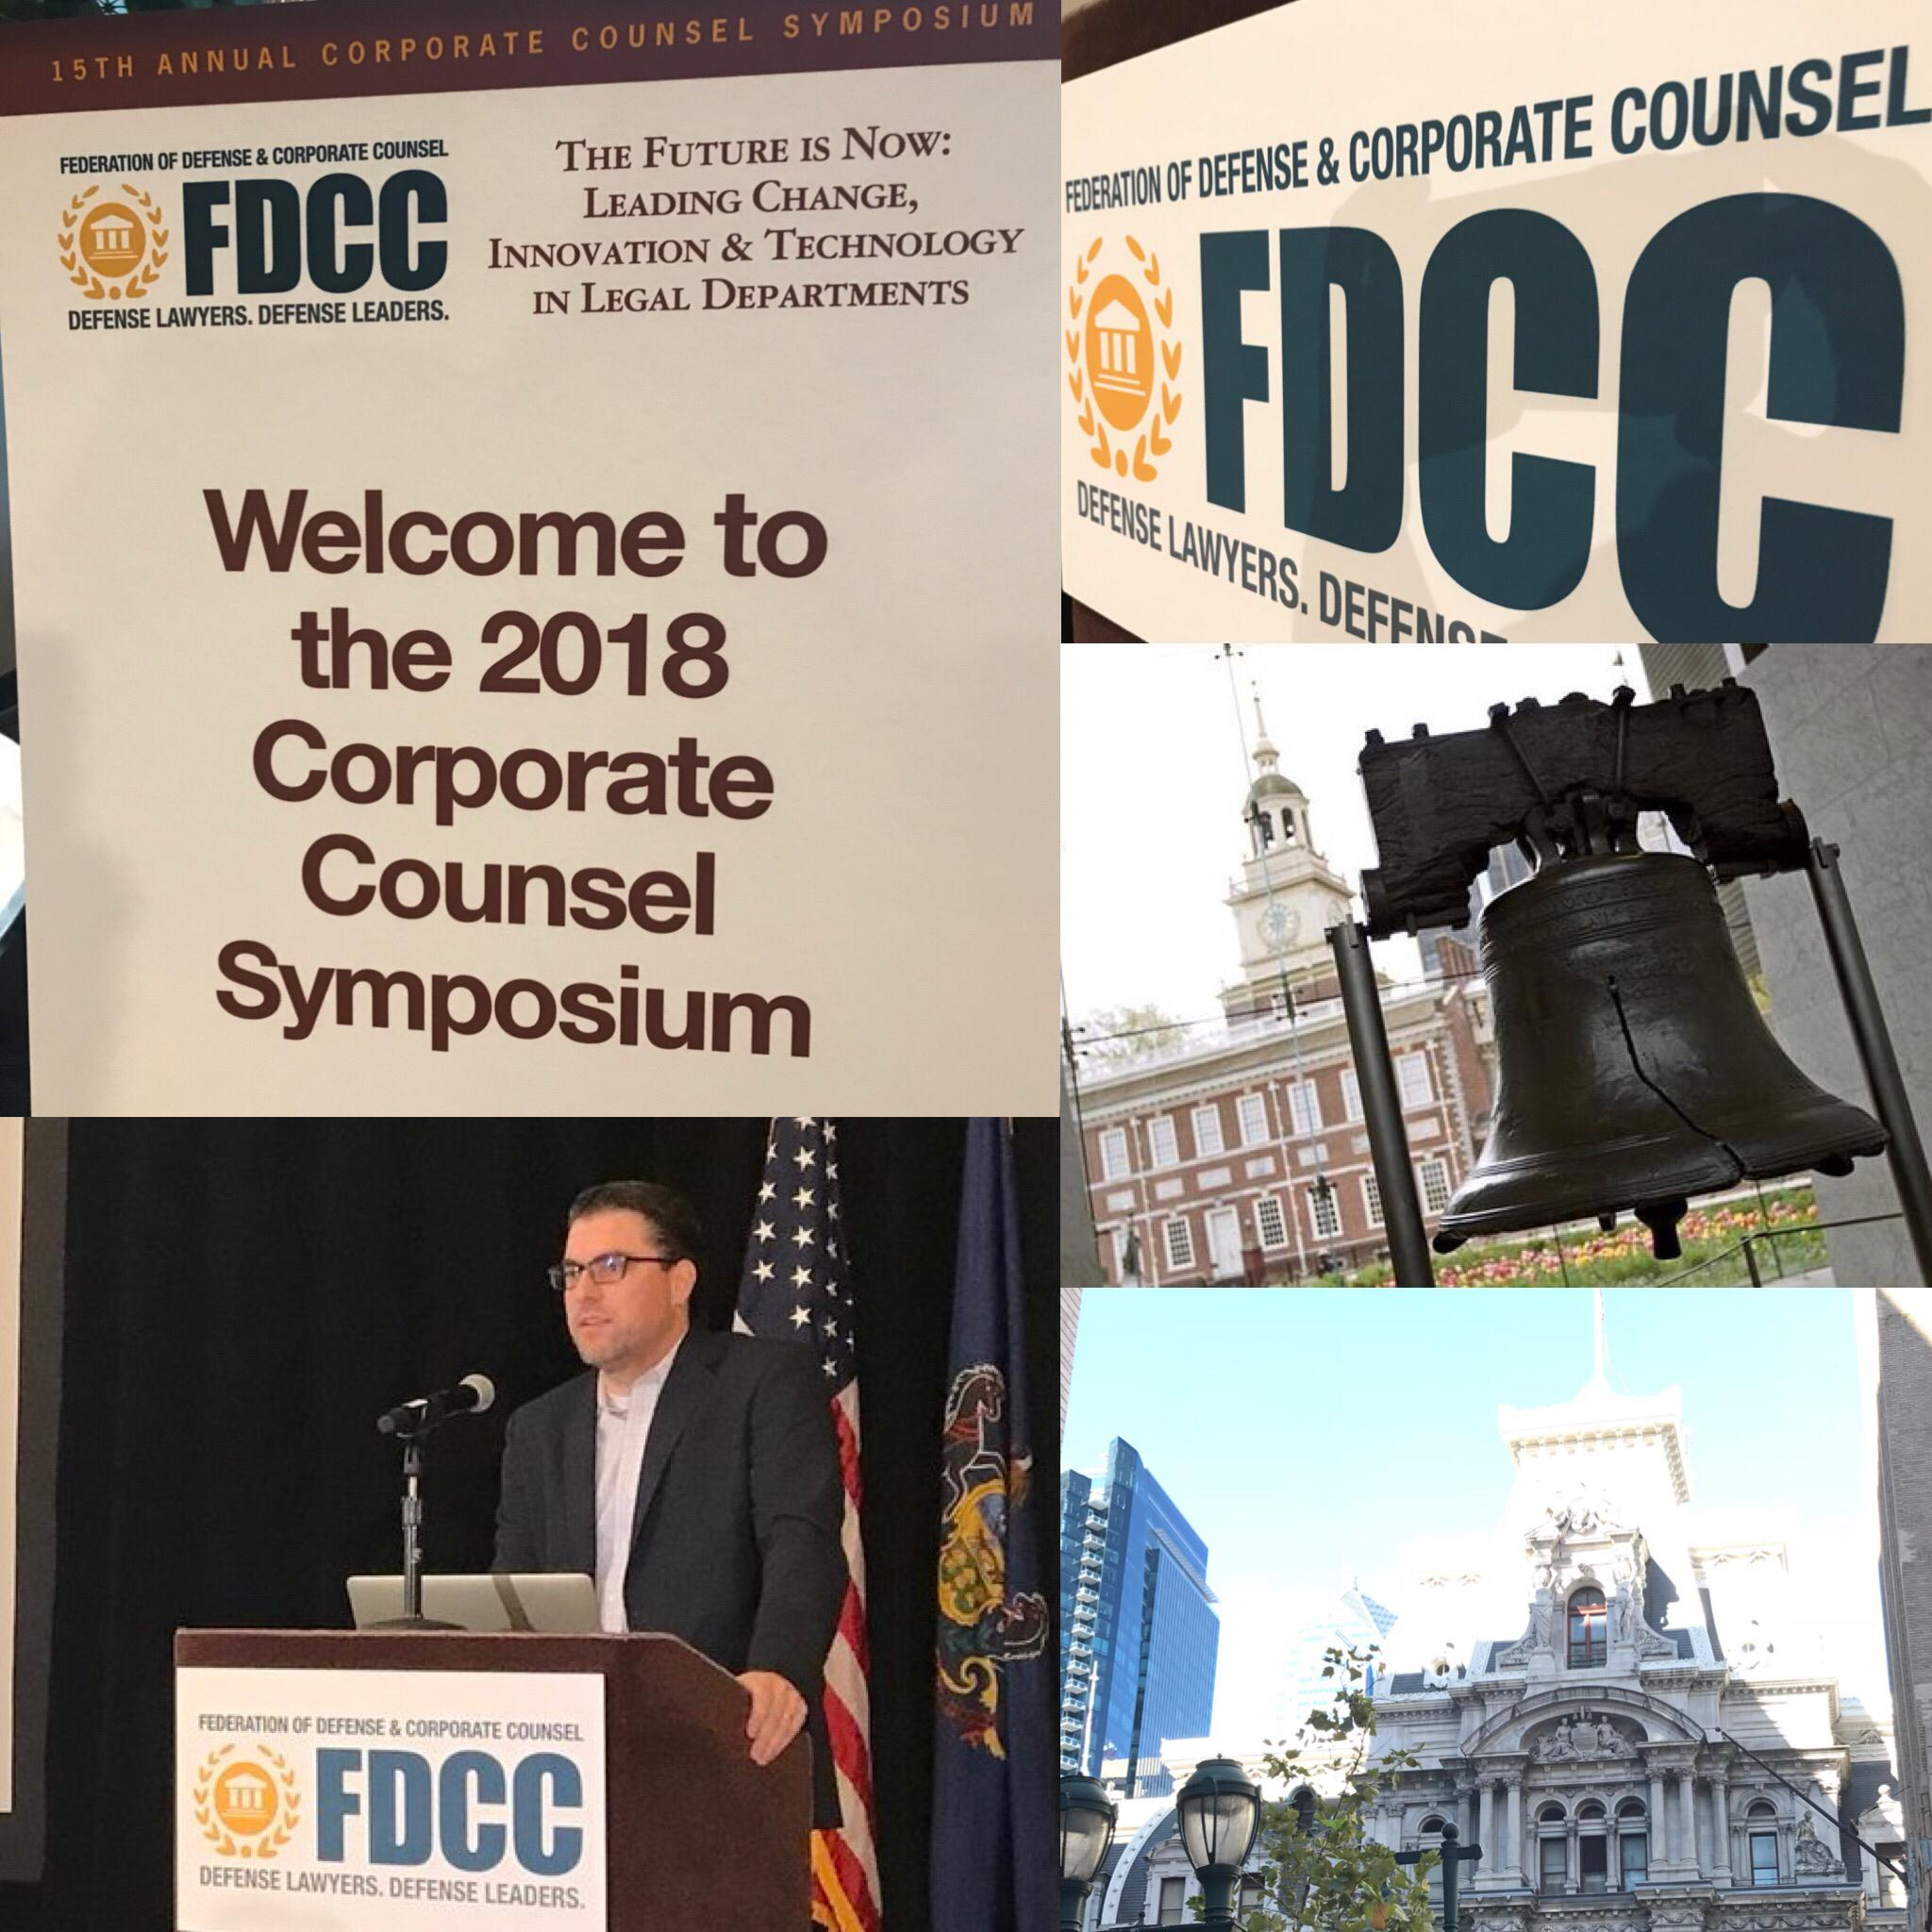 dan katz speaking at fdcc corporate counsel symposium 2018